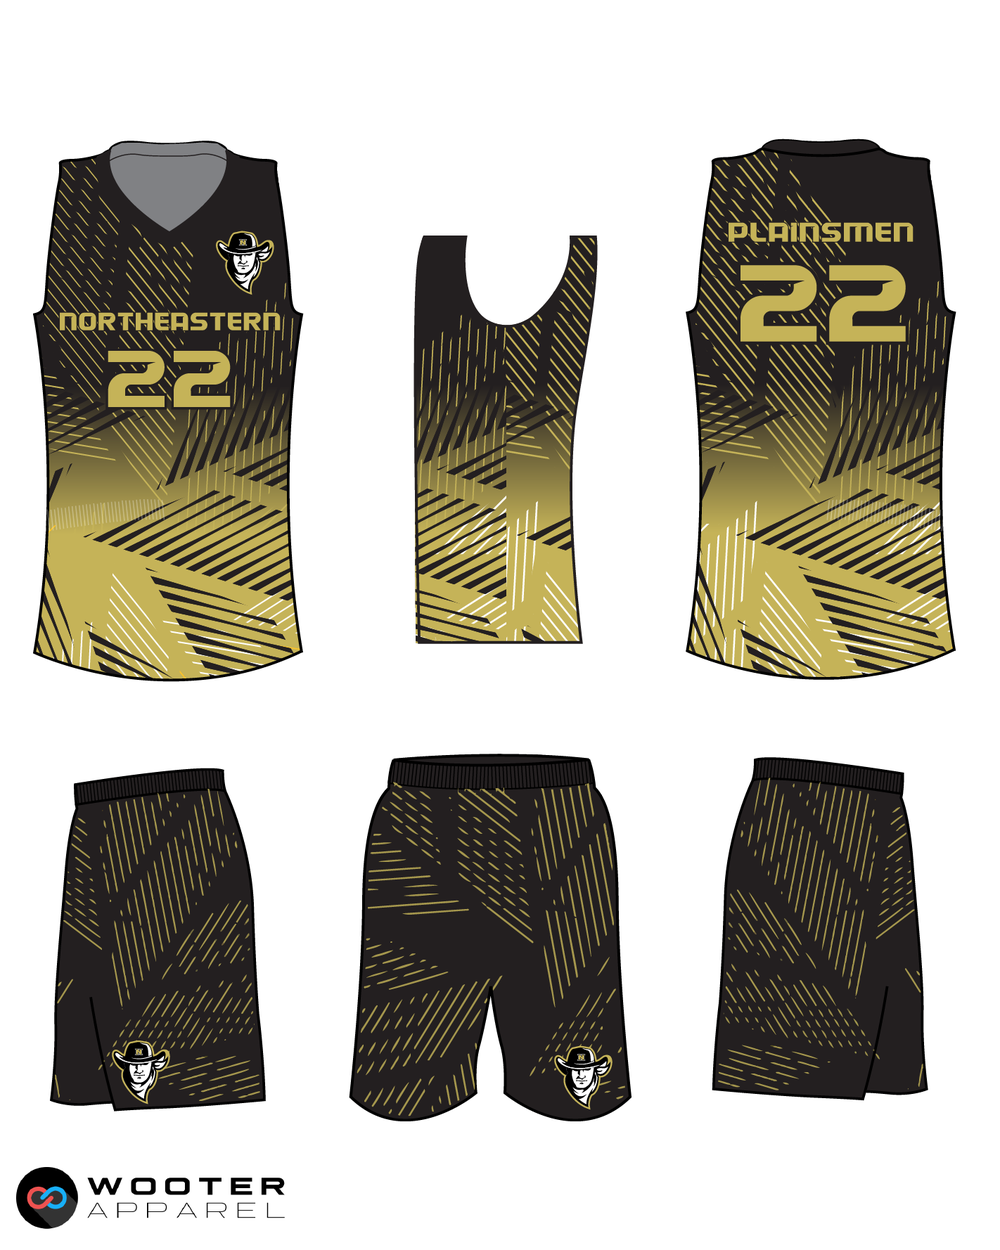 PLAINSMEN black gold white School basketball uniforms jerseys tops, shorts